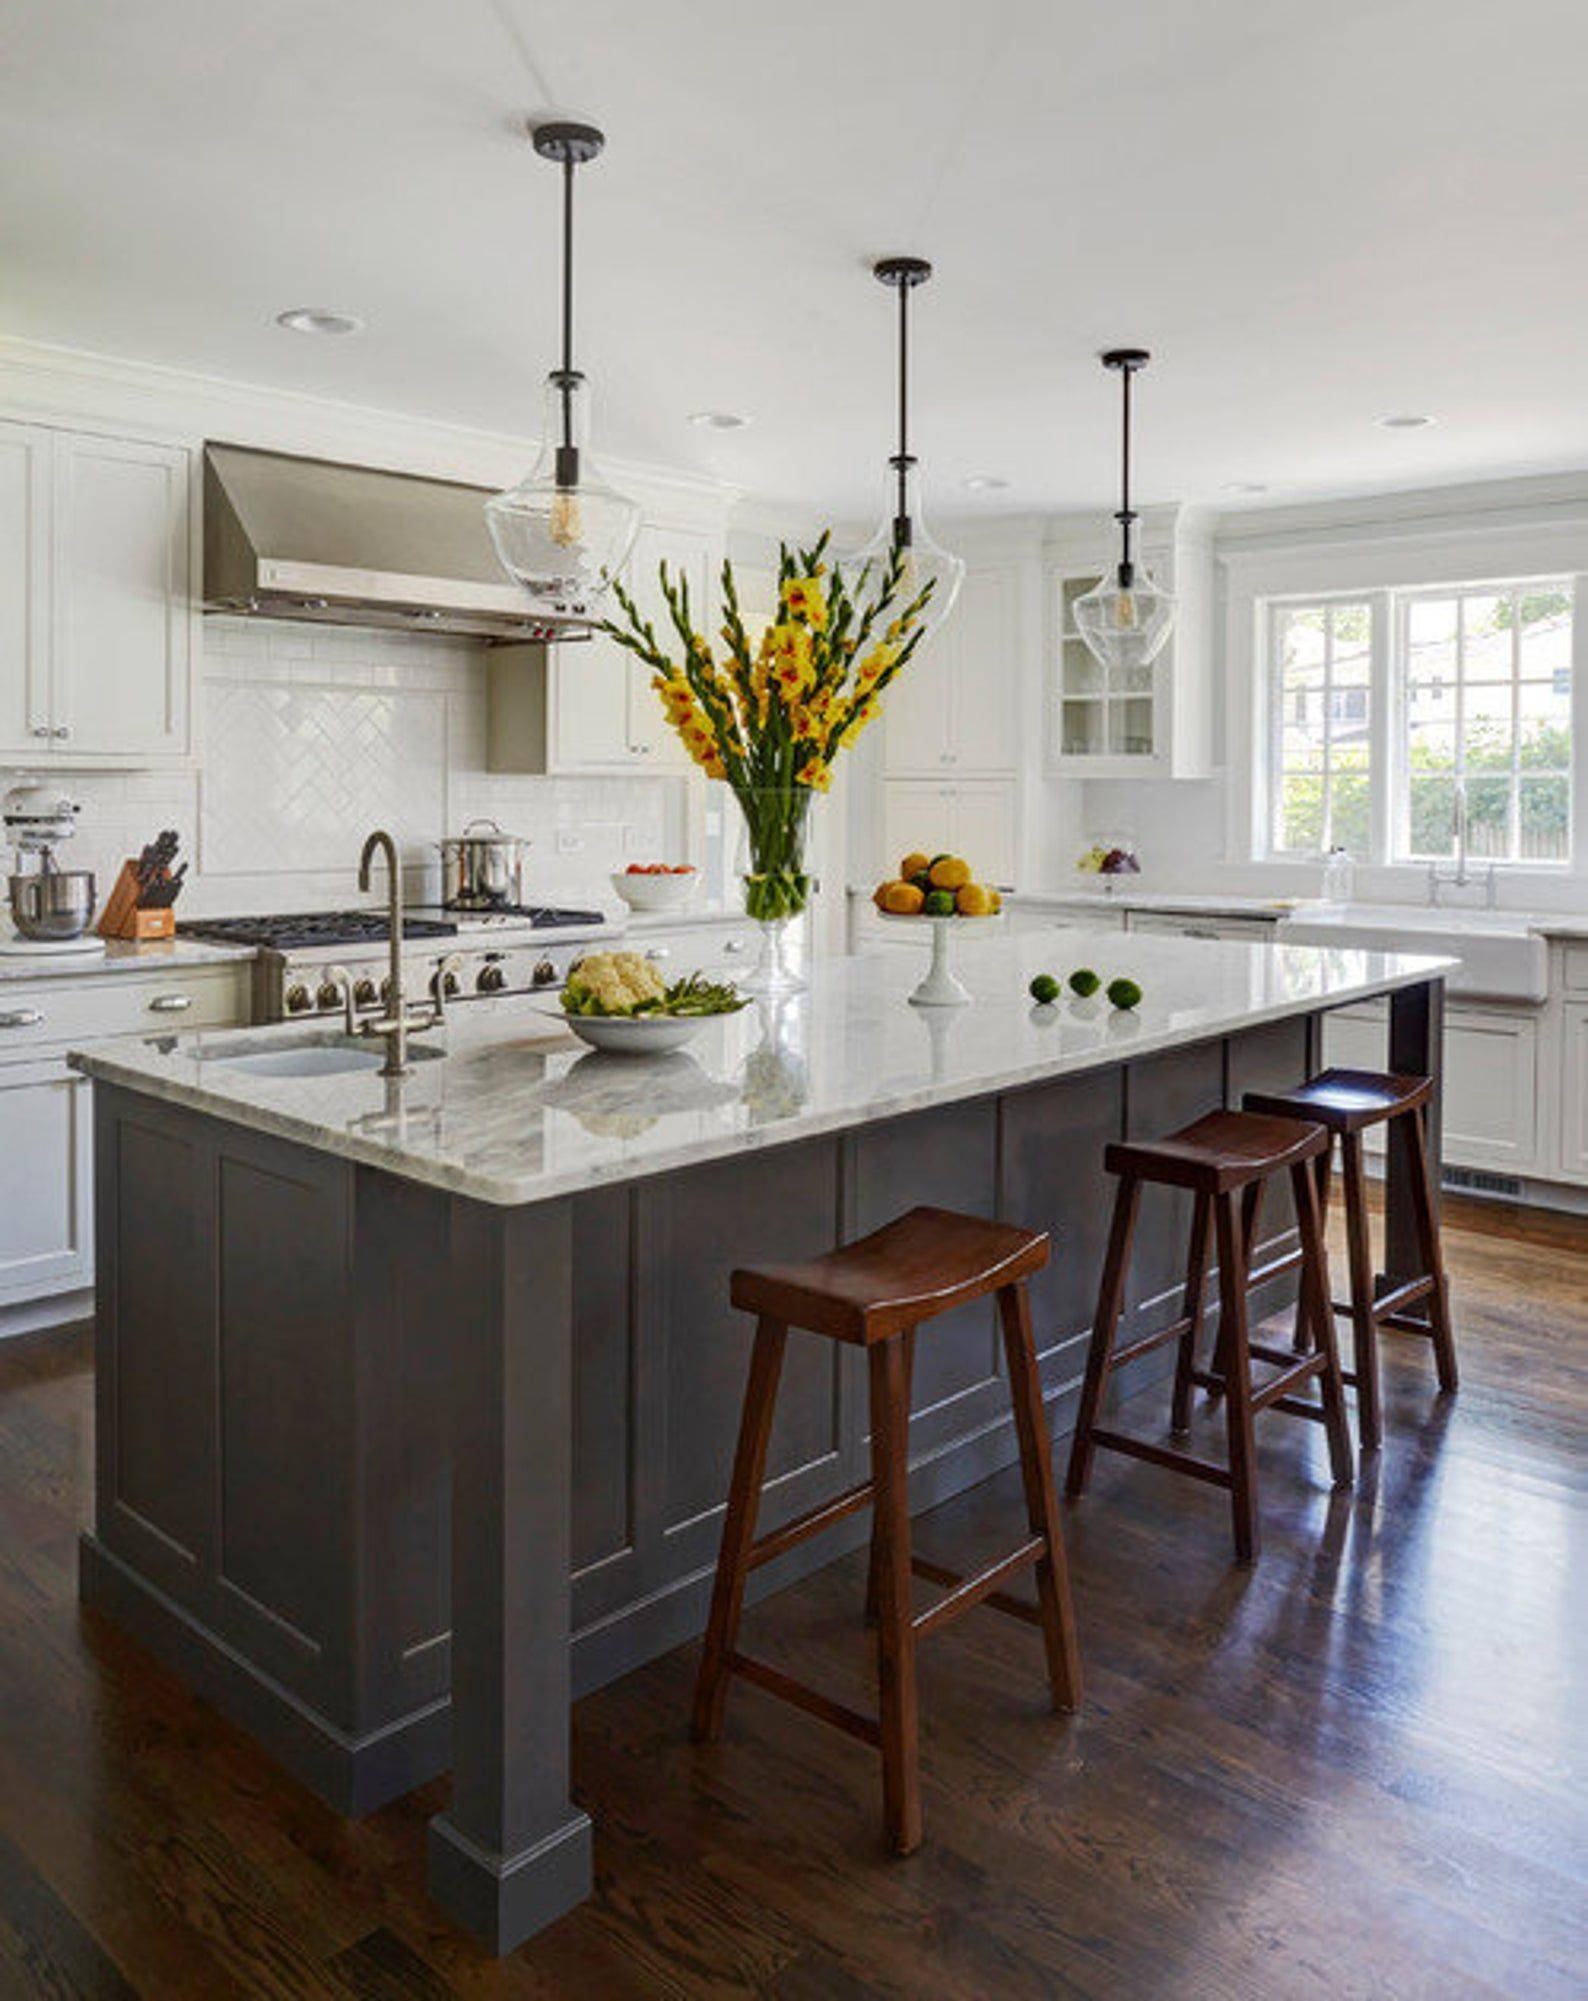 6ft Gray Kitchen Island With White Carrara Quartz Top Custom Welcome 6ft Carrara Gray I In 2020 Grey Kitchen Island Diy Kitchen Remodel Kitchen Island With Seating